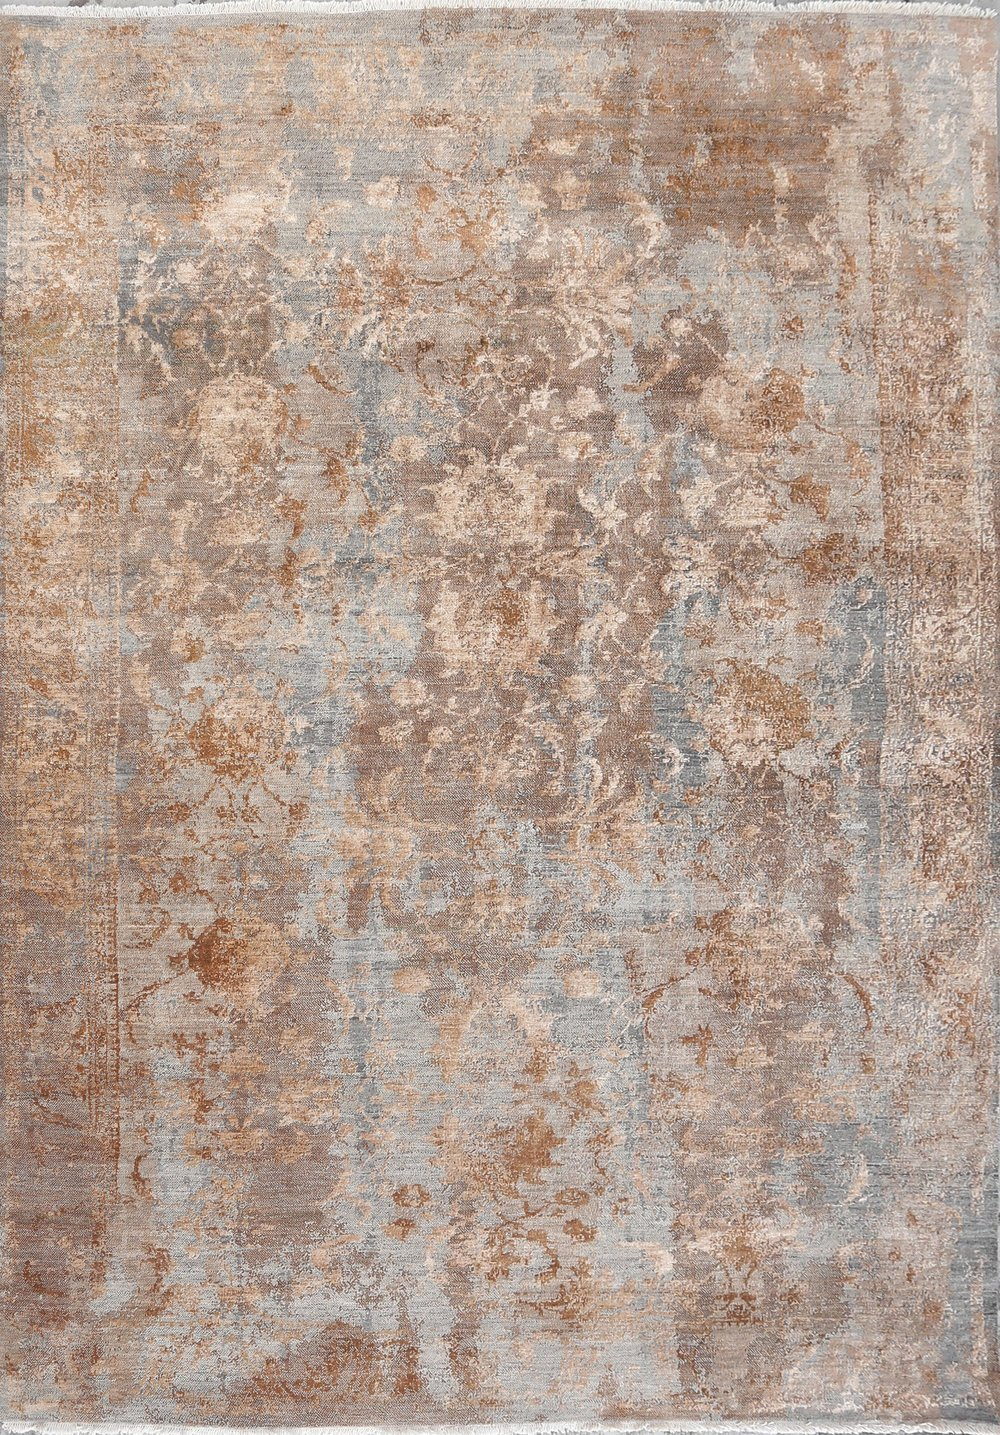 archiproductsNOUVEAU-ORIENT-NAGARE-BEIGE-IVORY-EBRU-235628-rel4f2ab17f.jpg